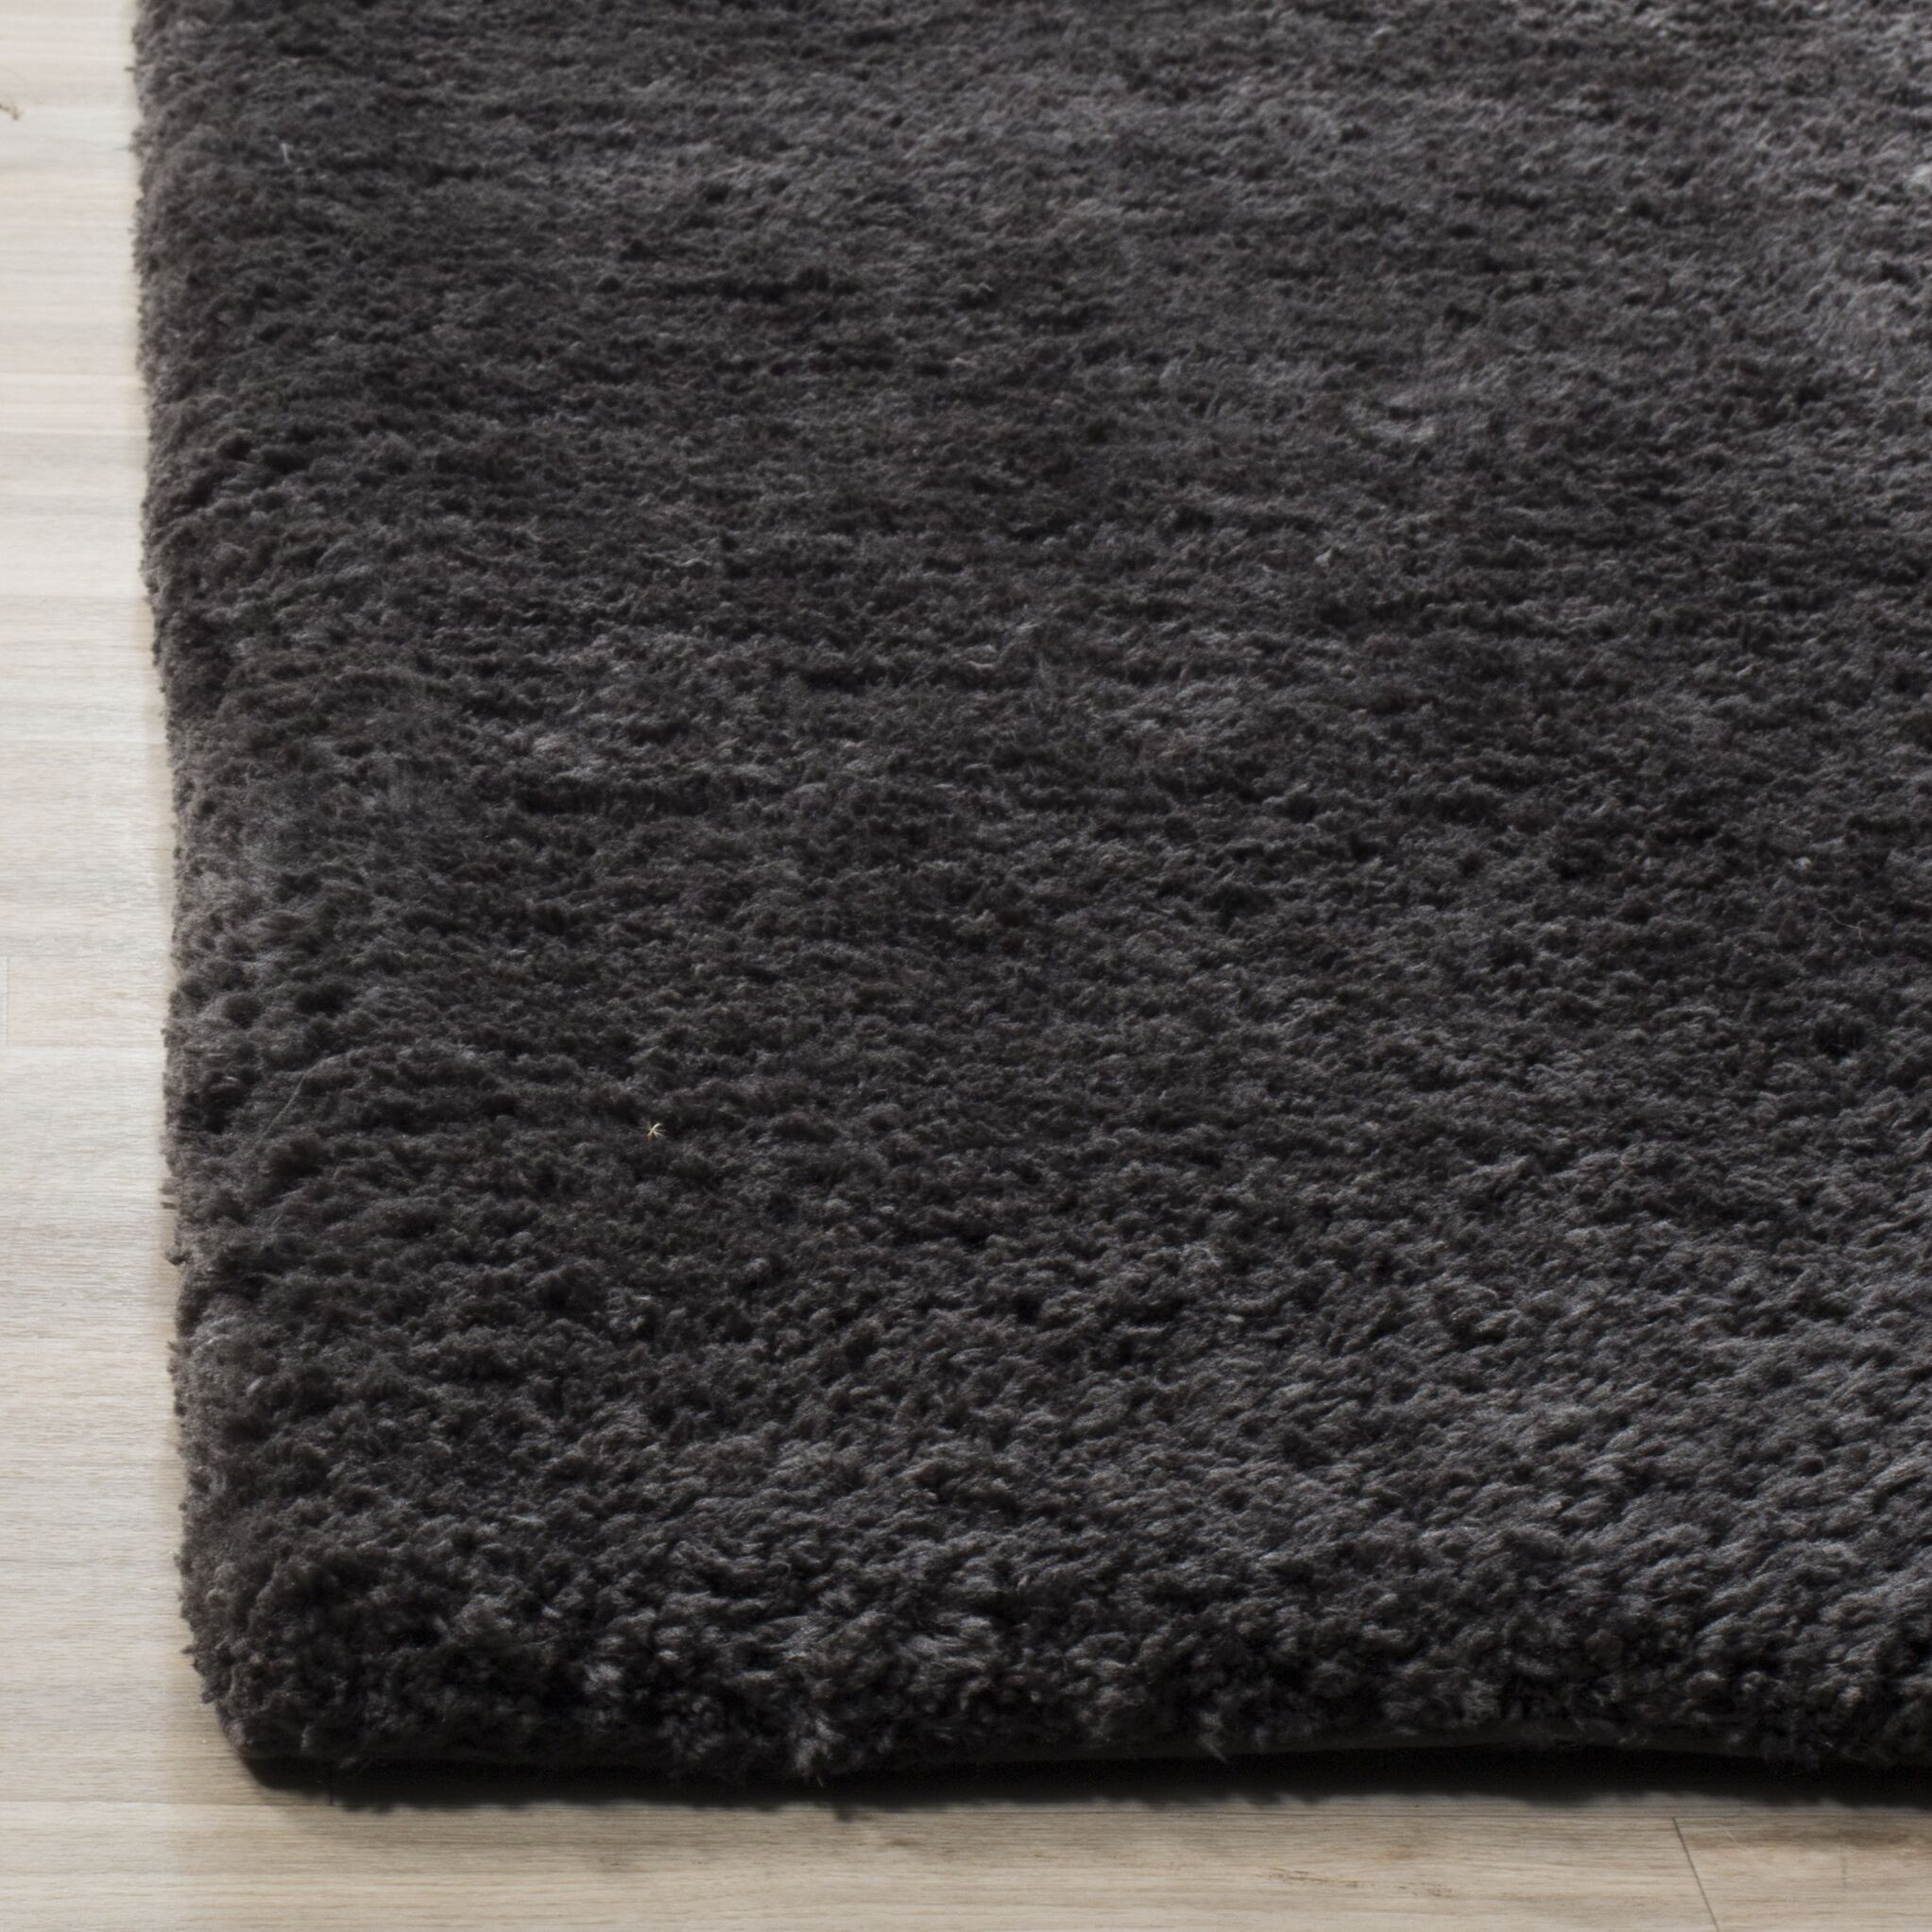 Detweiler Hand-Tufted Charcoal Area Rug Rug Size: Rectangle 5' x 8'